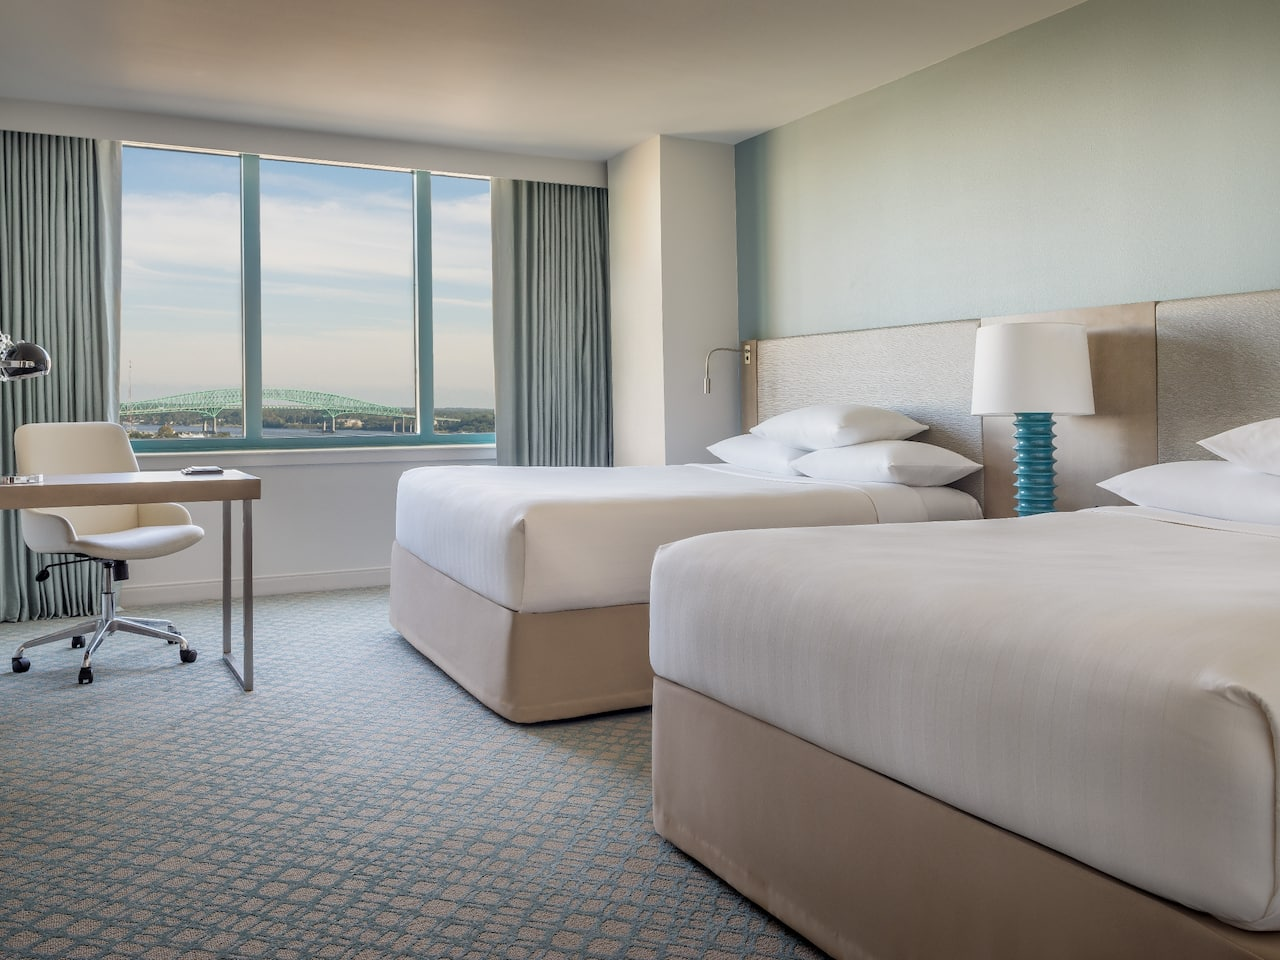 Double Room Hyatt Regency Jacksonville Riverfront